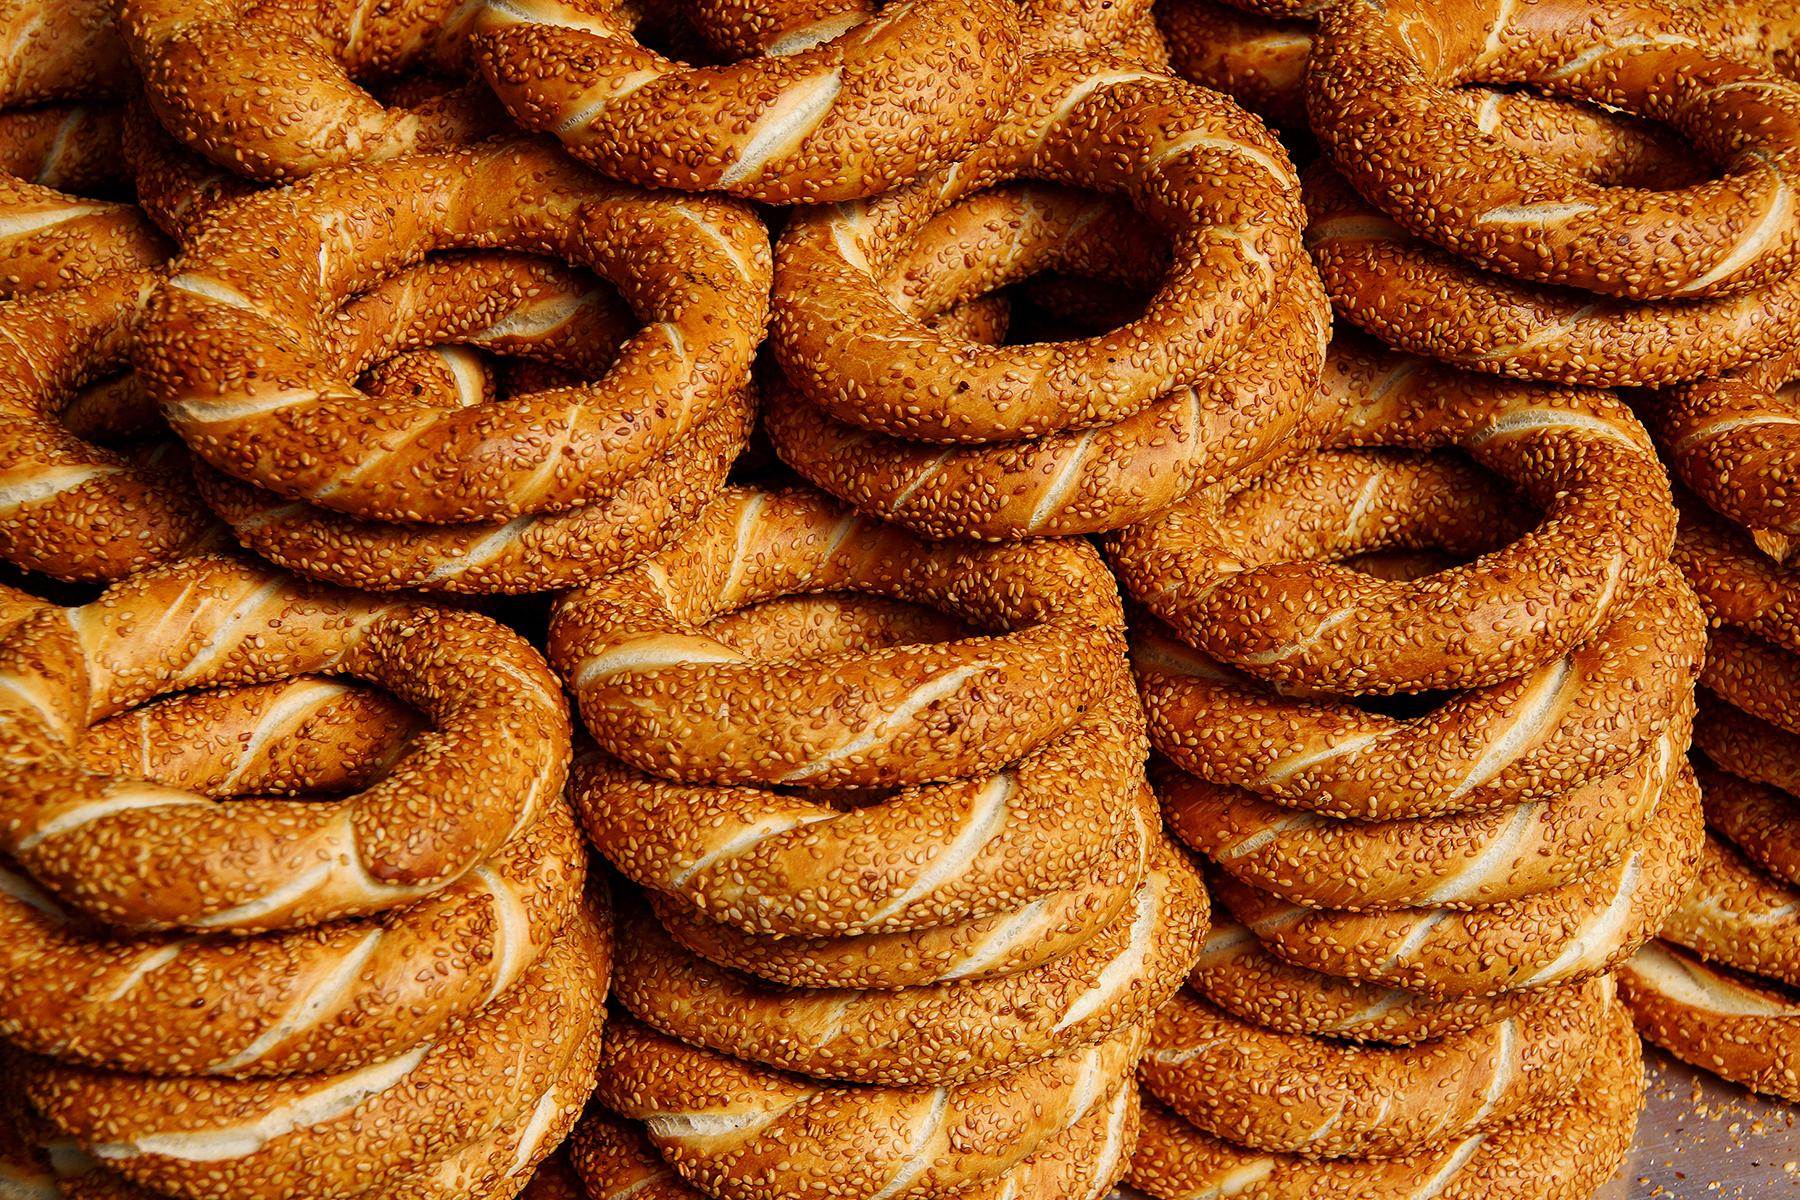 03_WhatToEatAndDrinkInTurkey__Simit_shutterstock_708120157